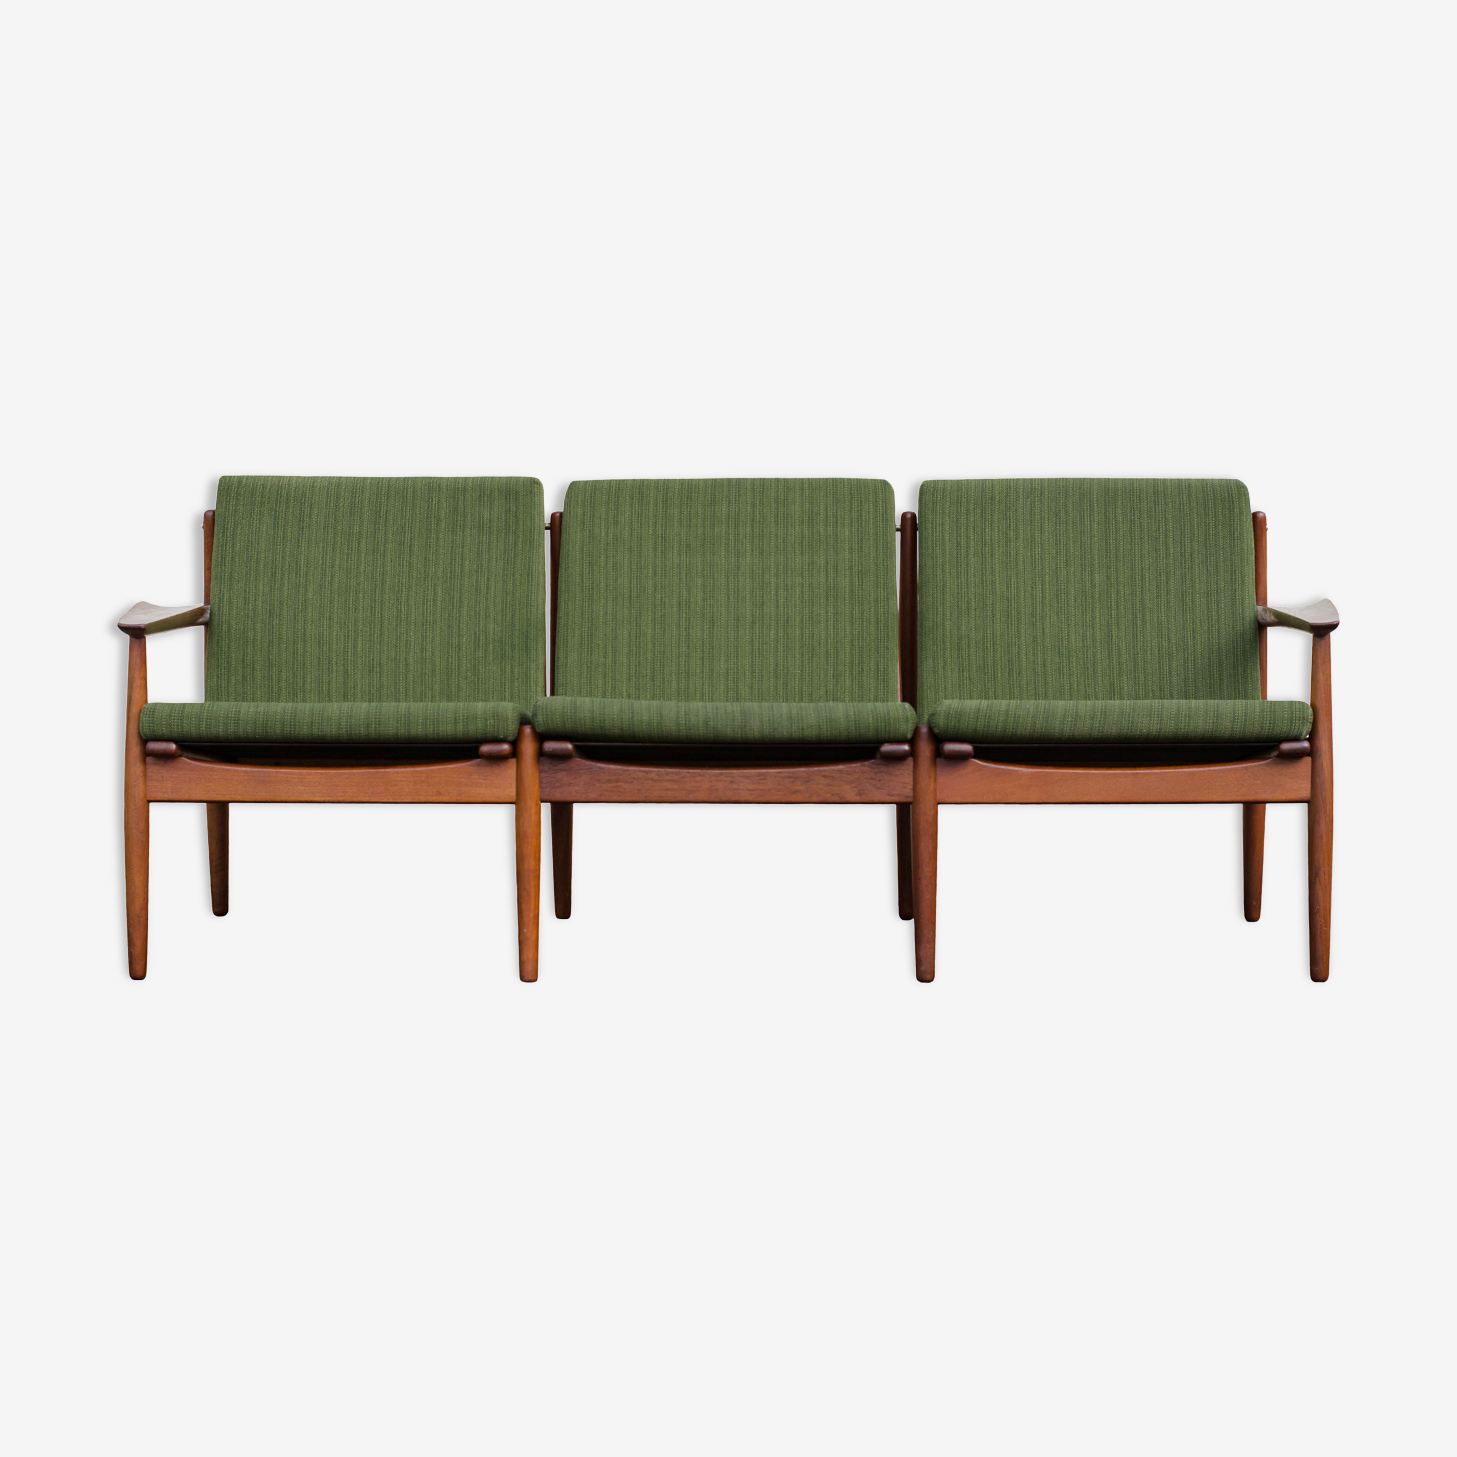 Banquette 3 places Arne Vodder 1960